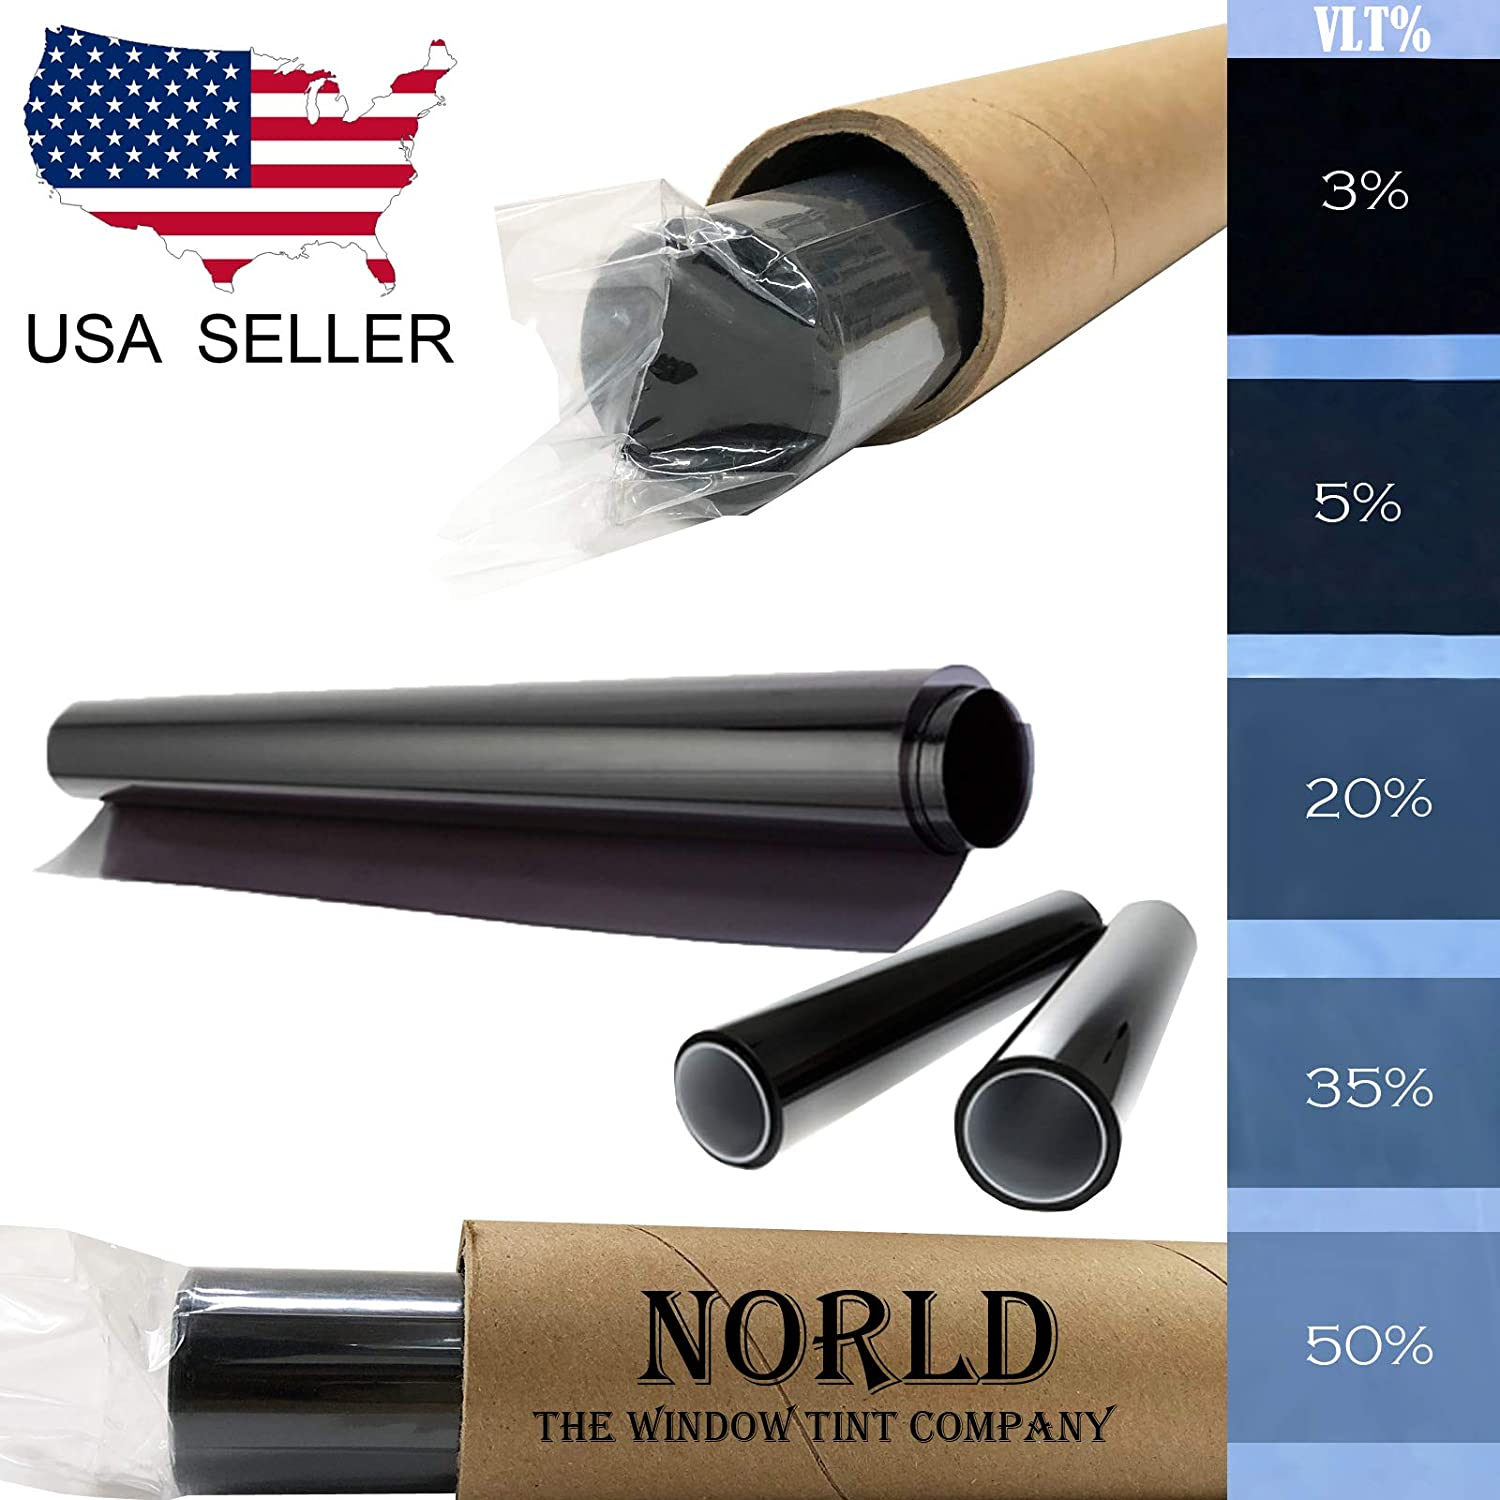 Norld 5% VLT 24 in x 60 in (2 Ft x 5 Ft) DIY Adhesive Window Tint Film Uncut Roll